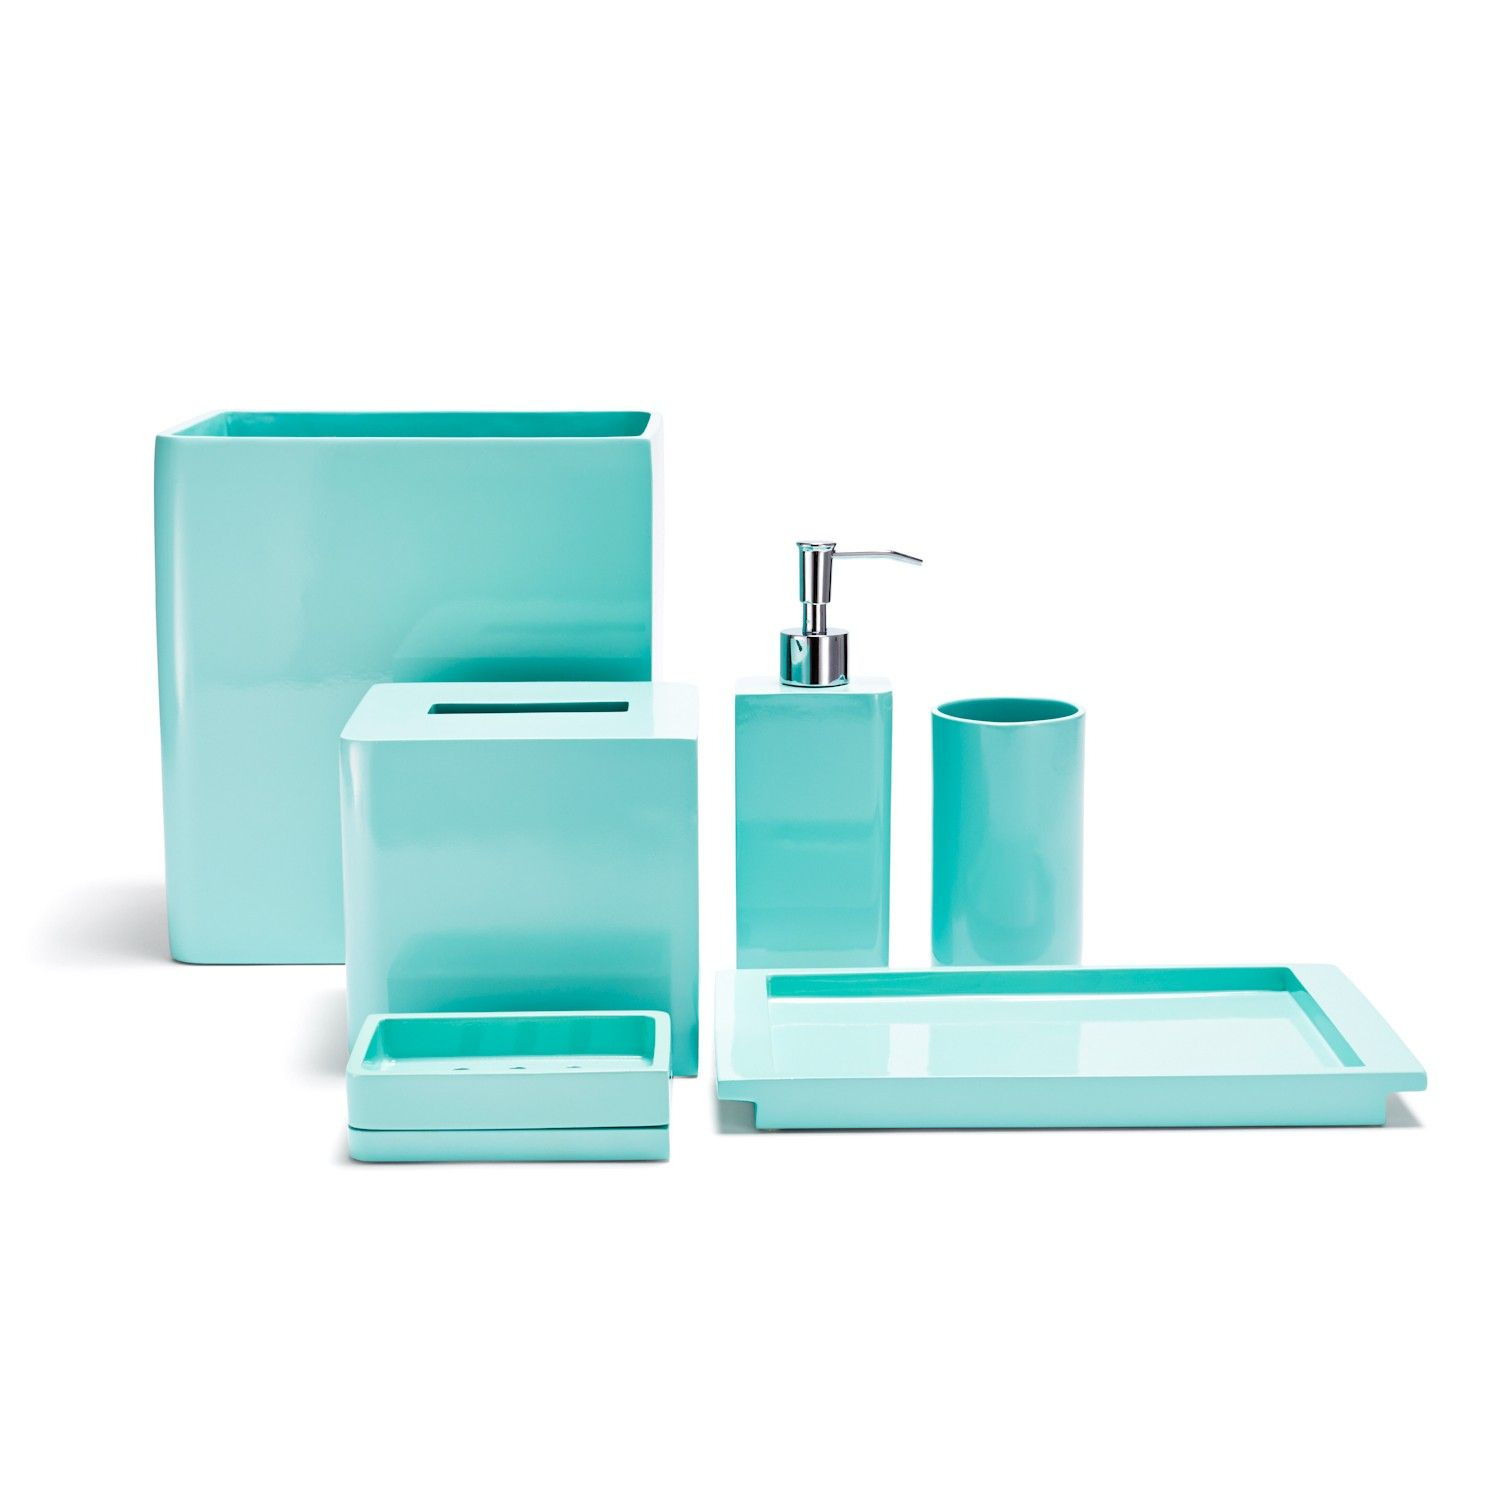 Bathroom accessories in blue ideas pinterest for Turquoise bathroom accessories sets